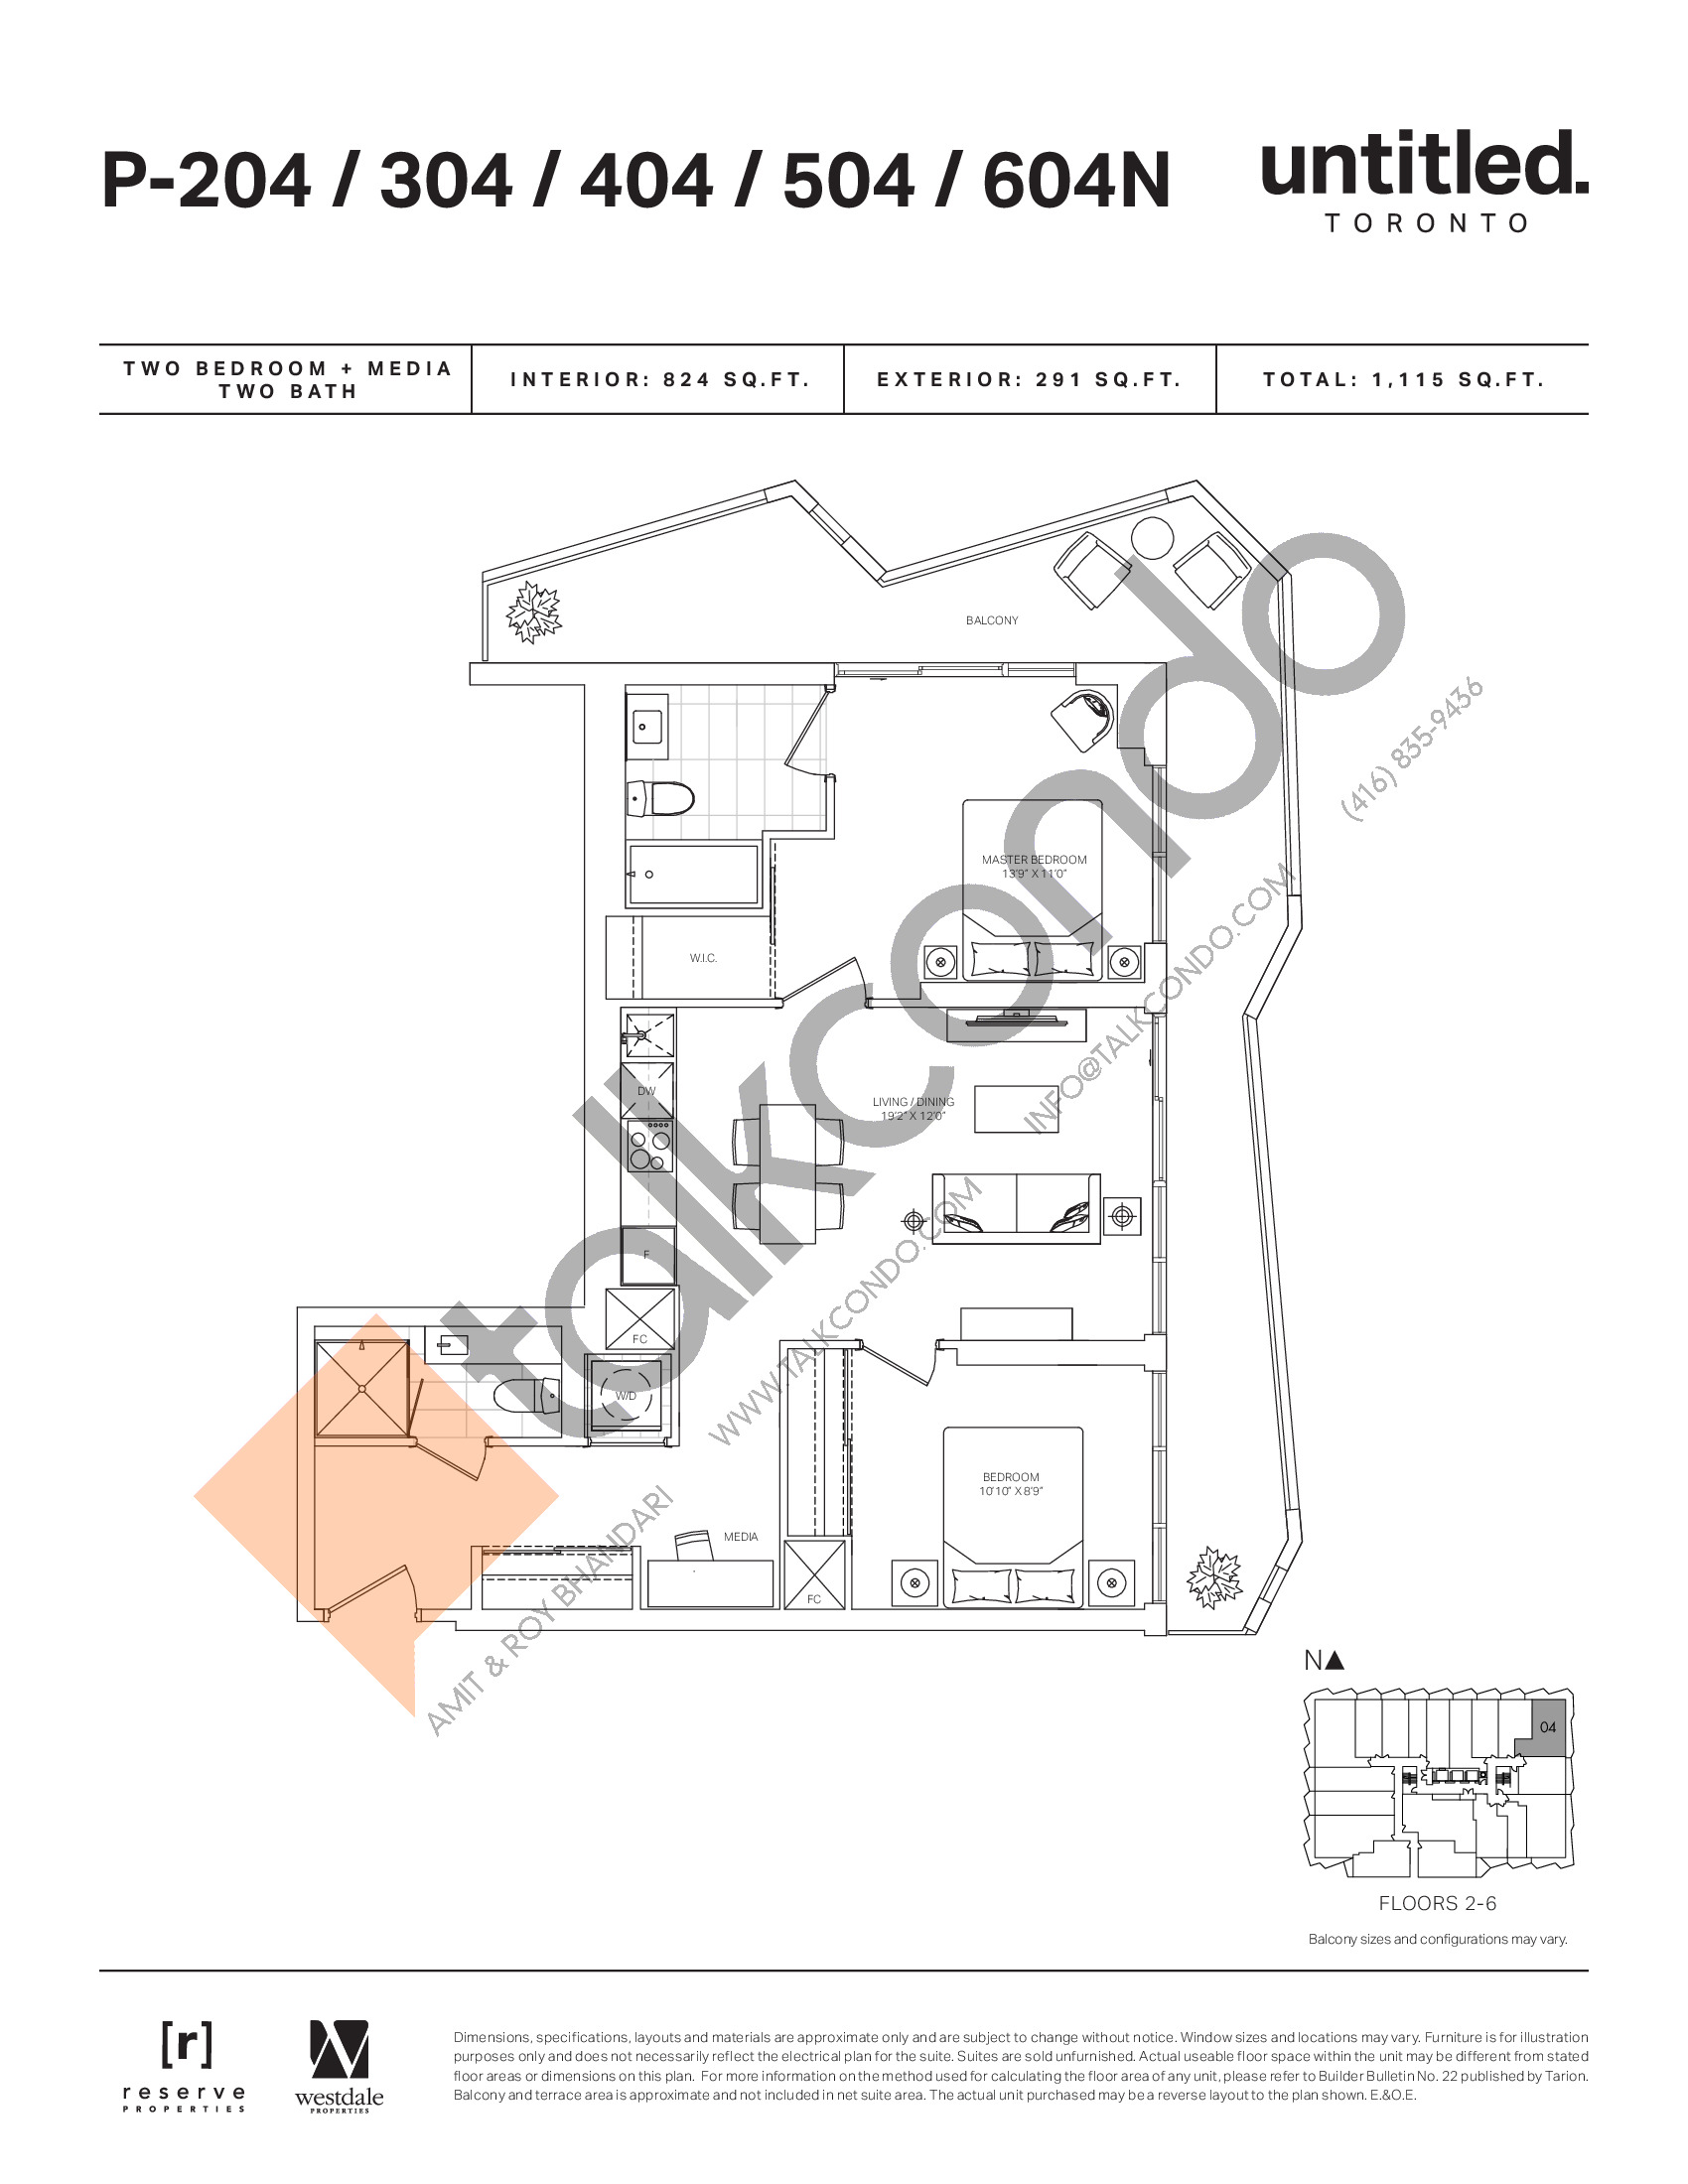 P-204/304/404/504/604N Floor Plan at Untitled North Tower Condos - 824 sq.ft